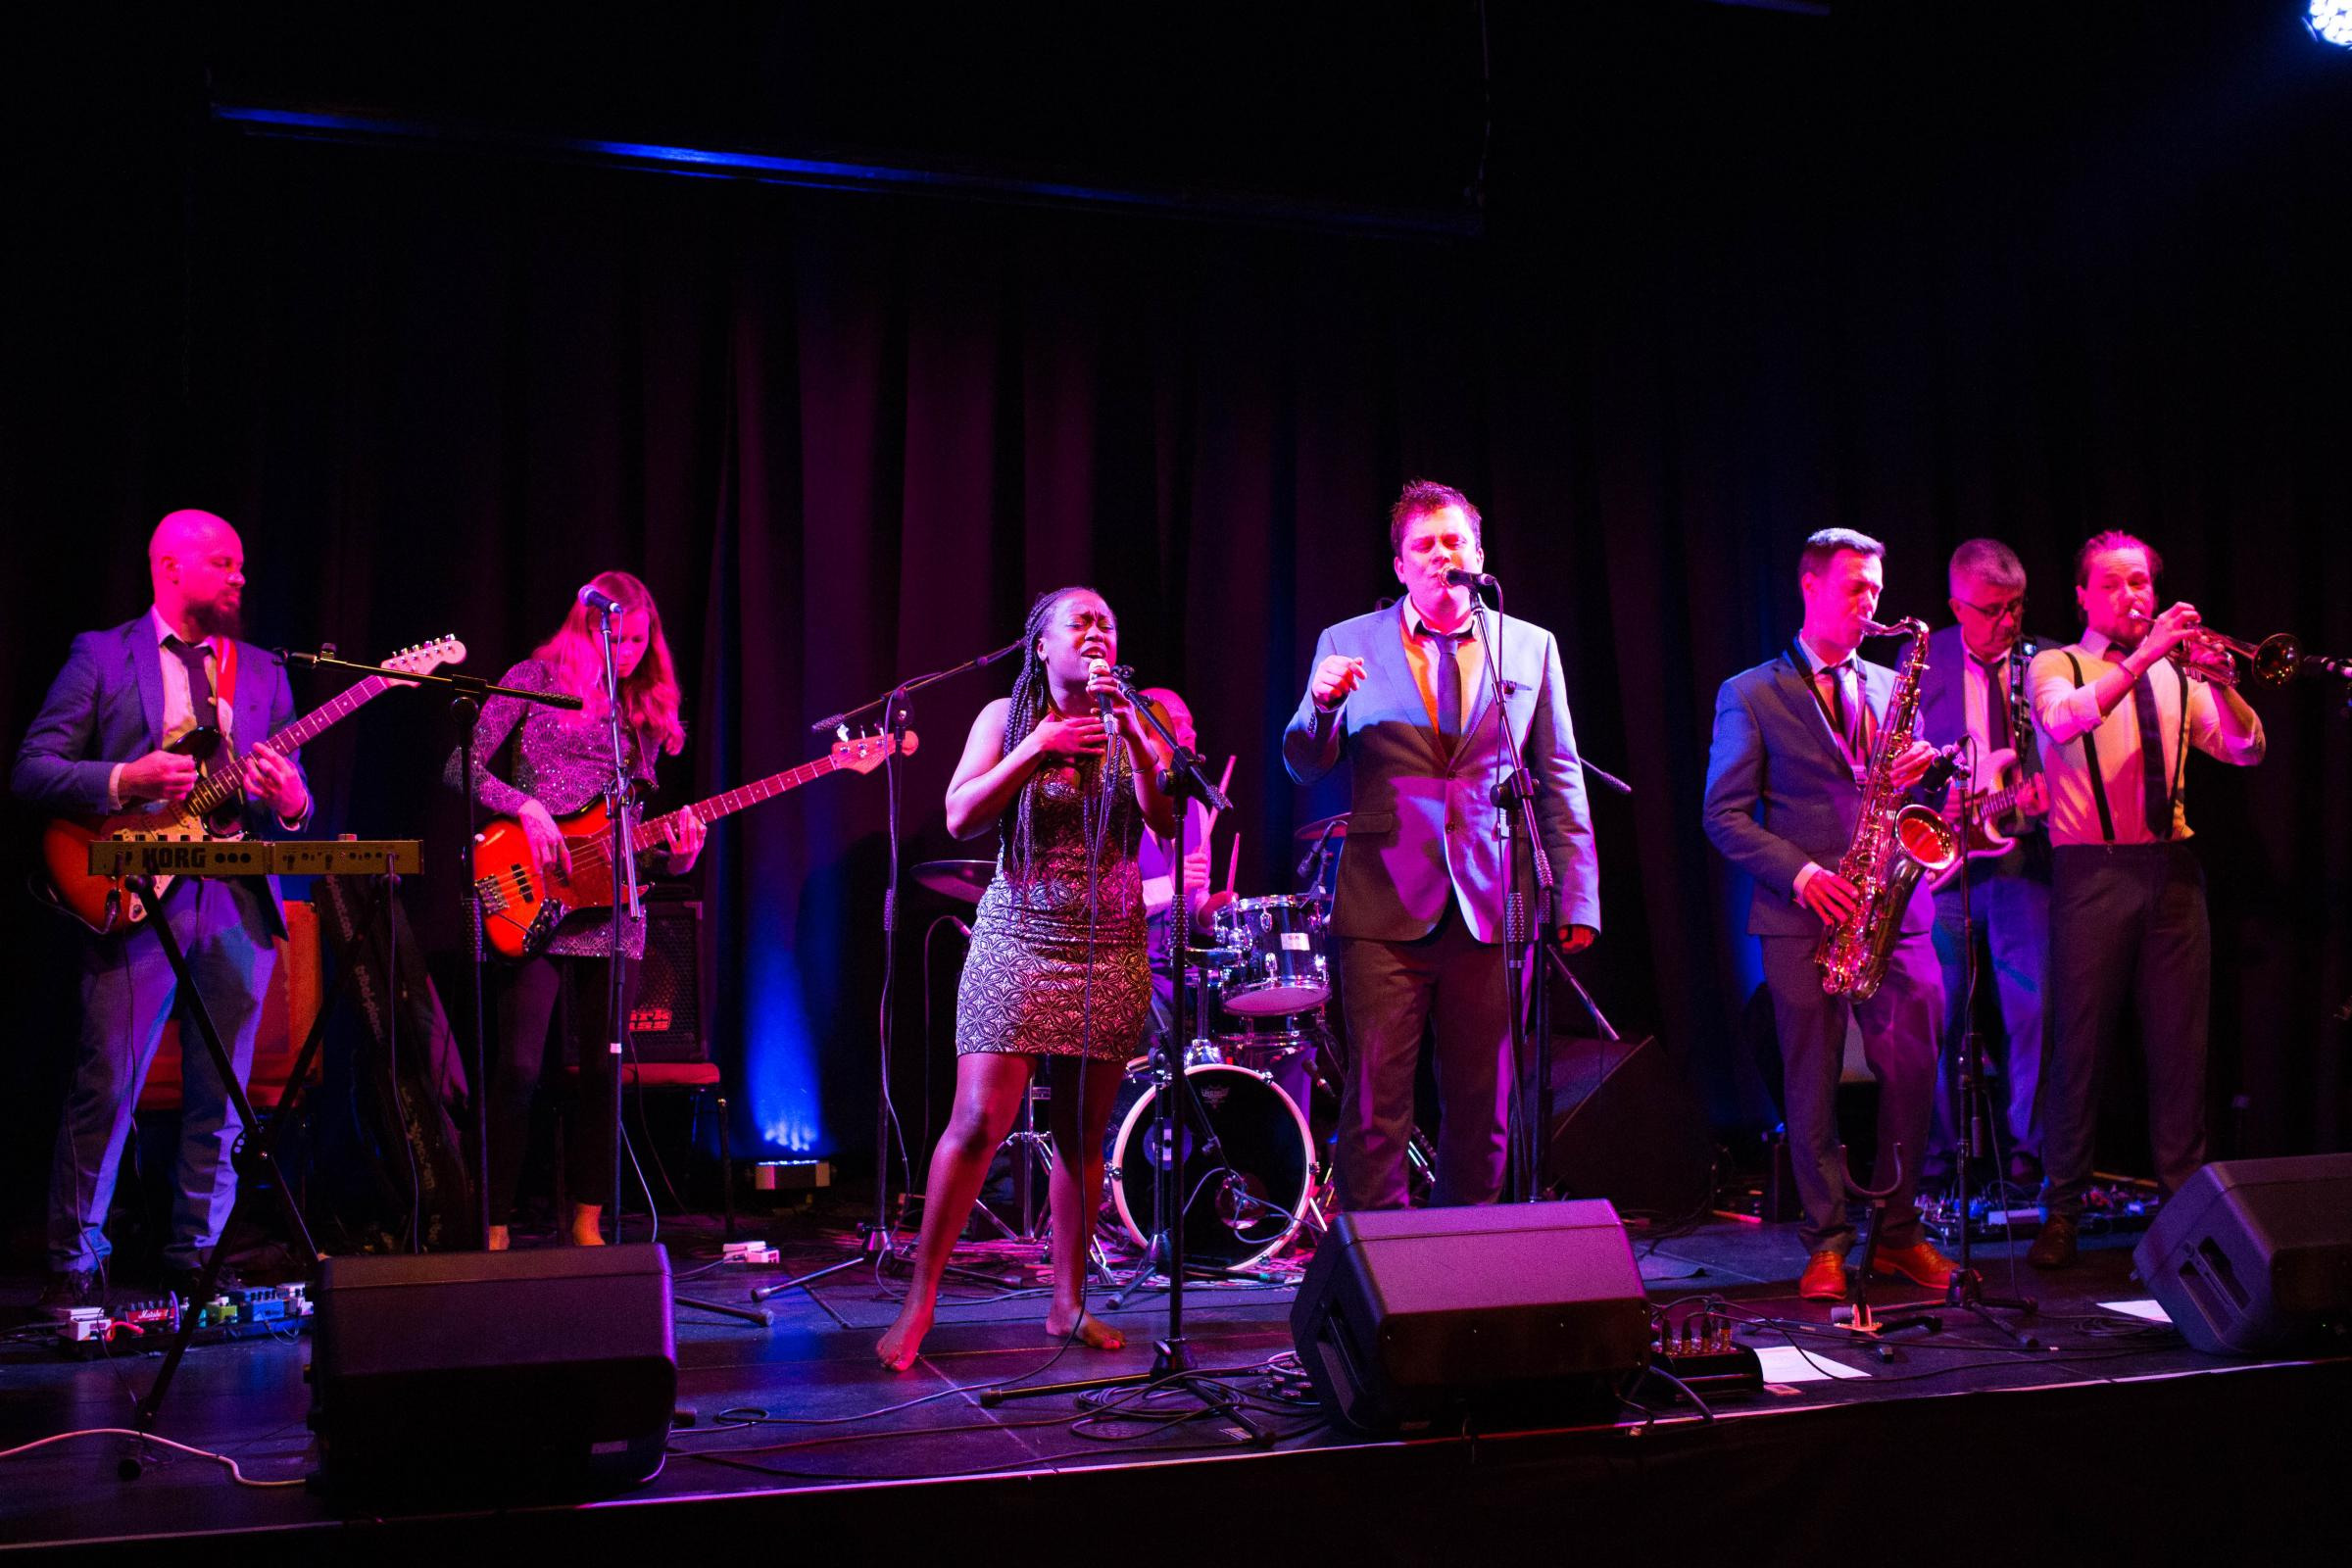 South Coast Soul Revue Live at the Ropetackle